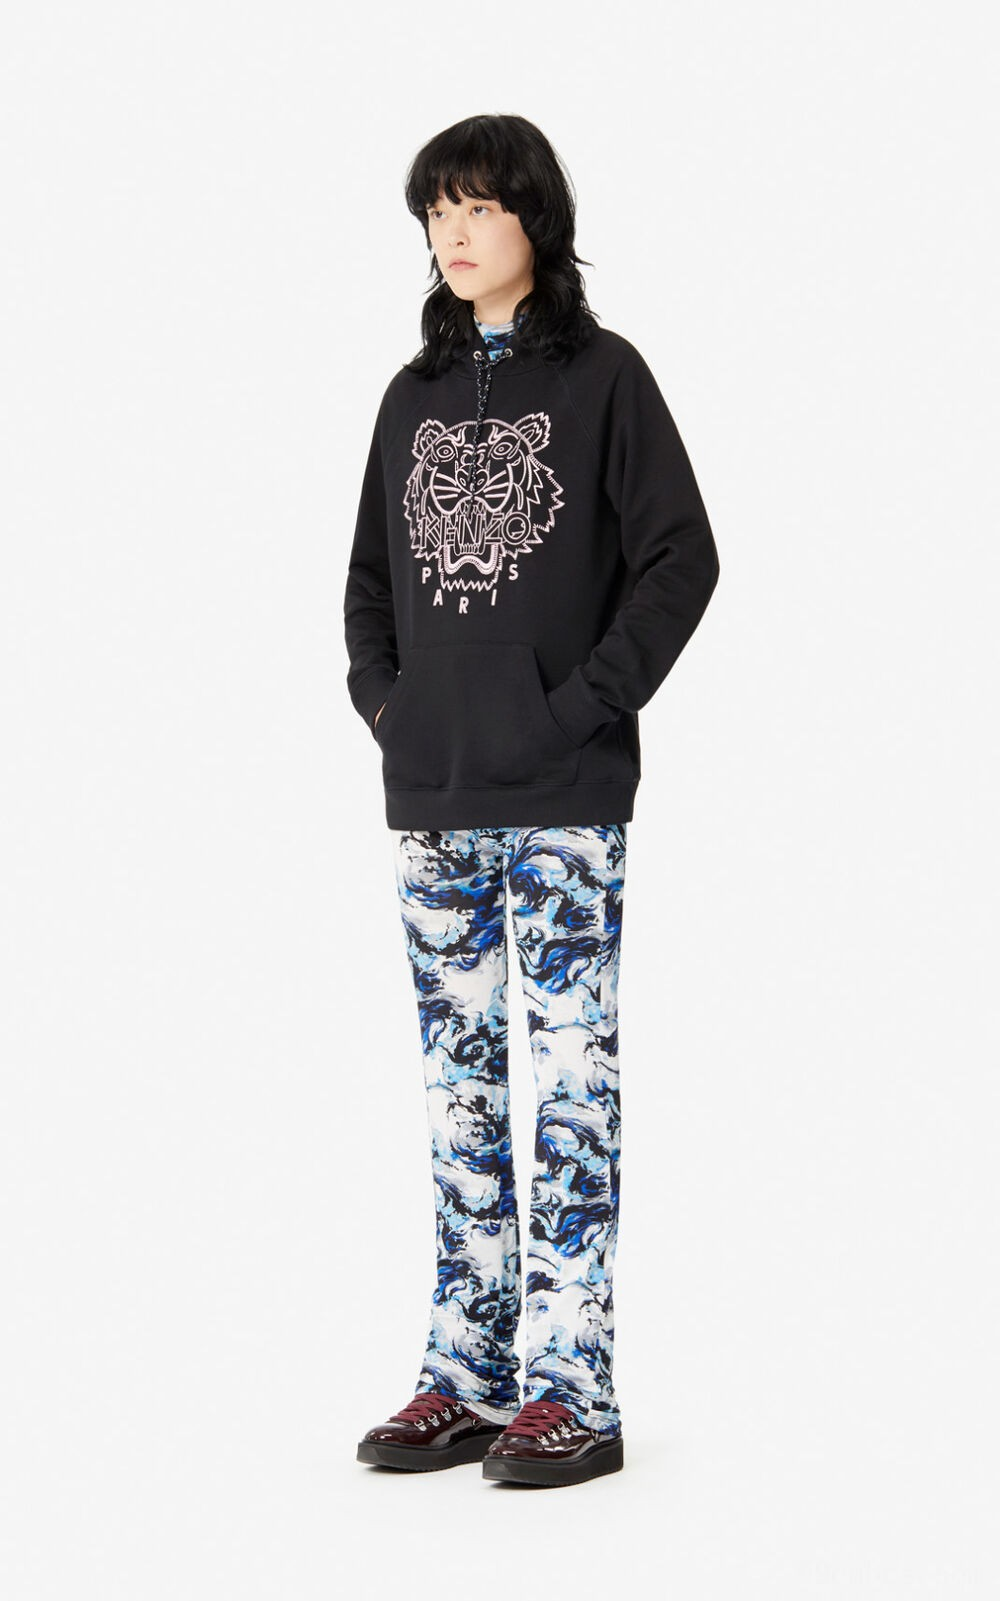 Kapuzensweatshirt Tiger 'Capsule-Kollektion Expedition' - black